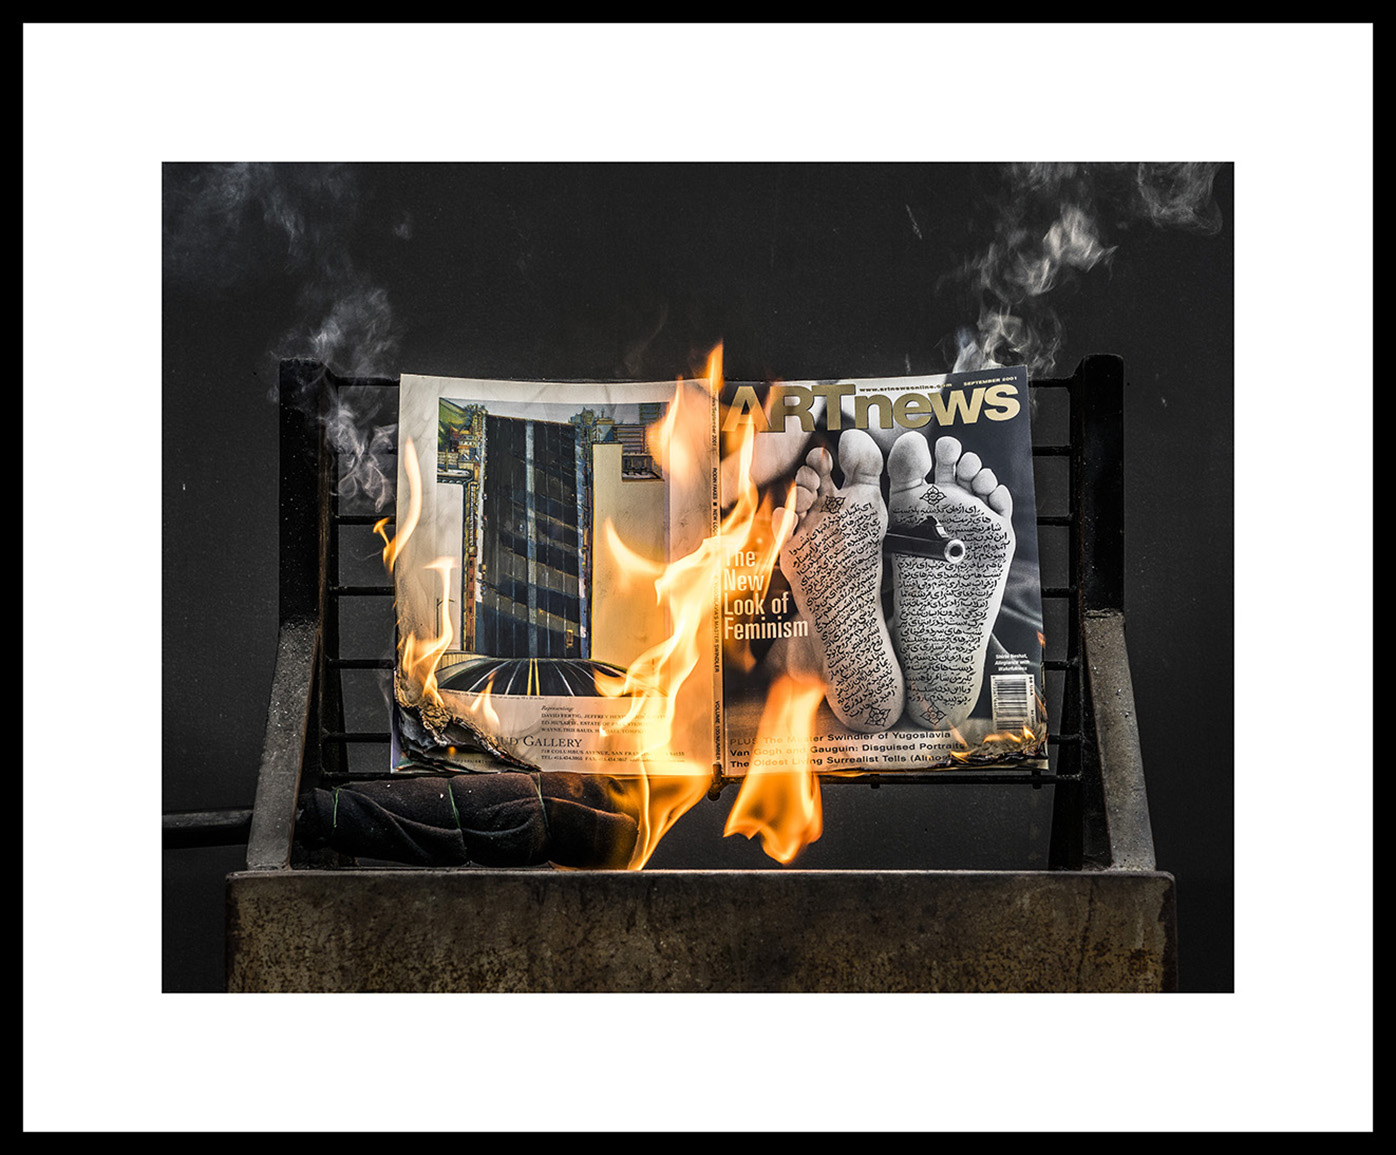 AN Dec 2001 #0844F, 2019   Archival ink jet print on Epson exhibition fiber paper, framed Image: 18x24in, Paper: 24x30in, Frame: 25x31in, Edition of 5 with 2AP